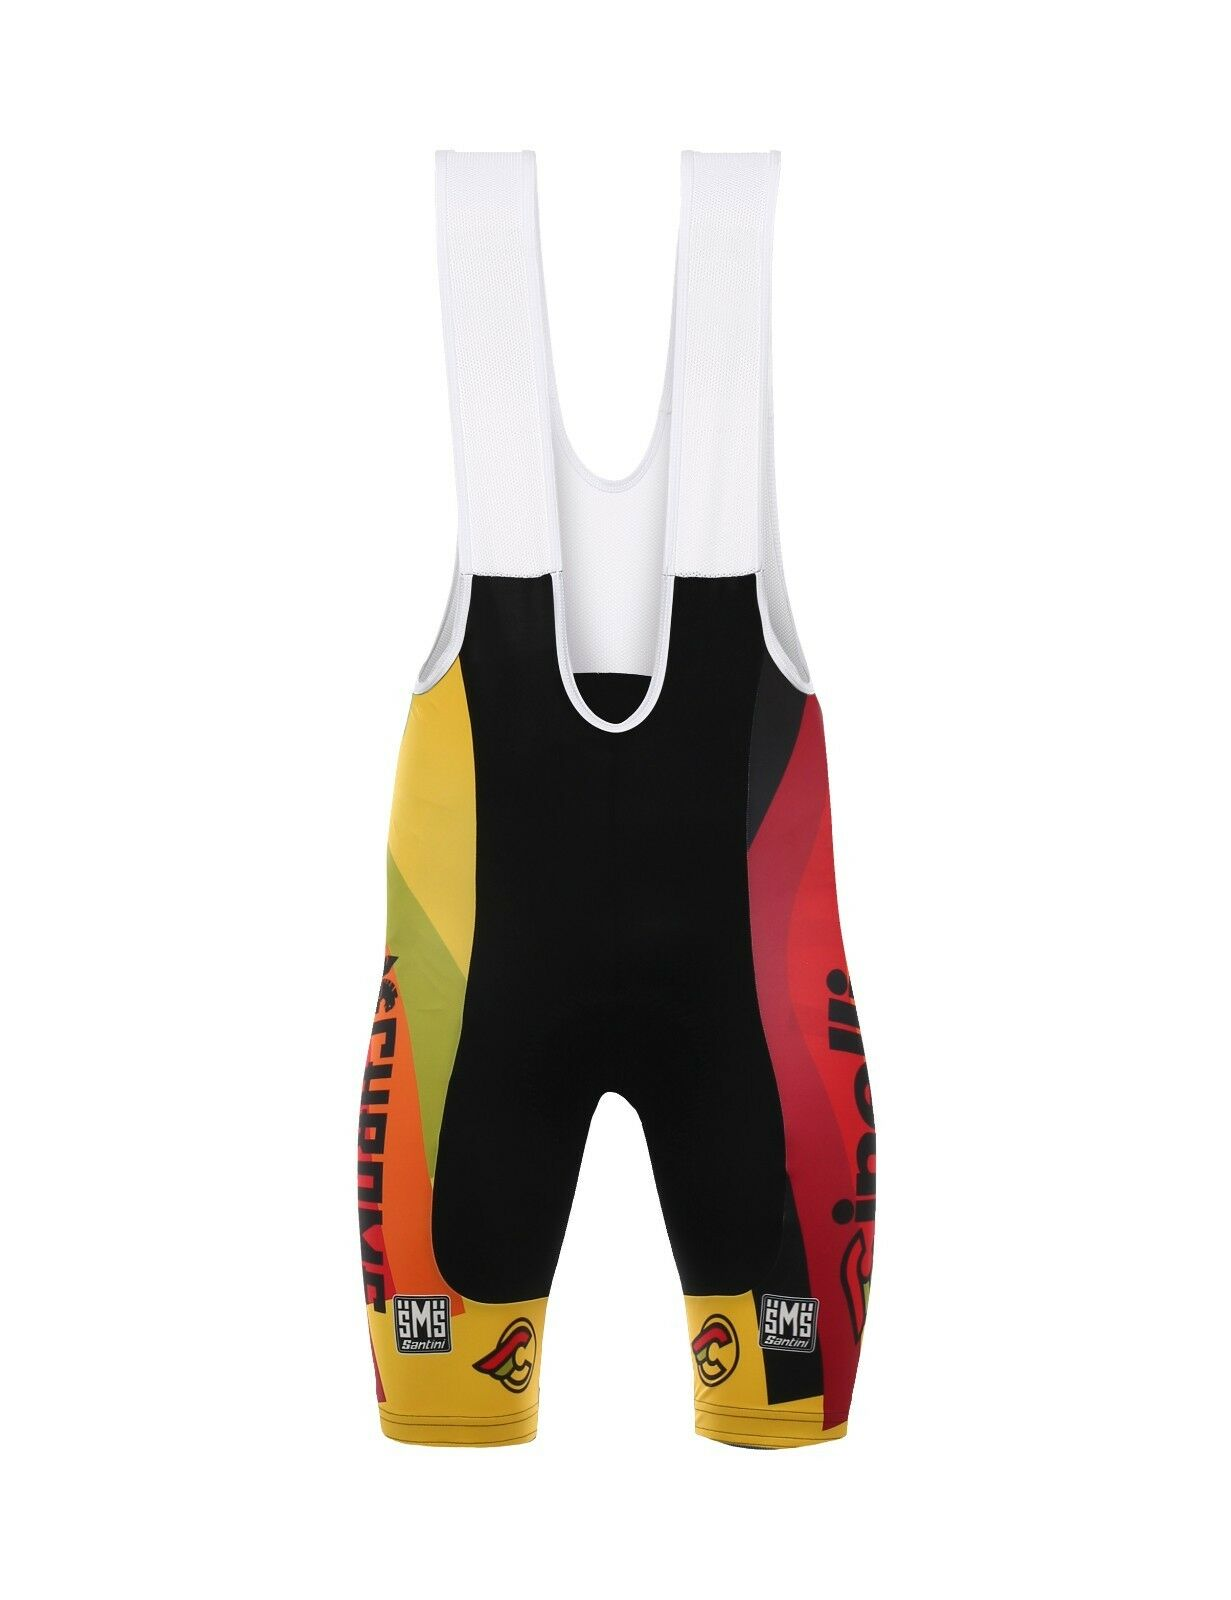 2017 Cinelli Chrome Team Cycling Bib courtes with Max2 Pad - made by Santini